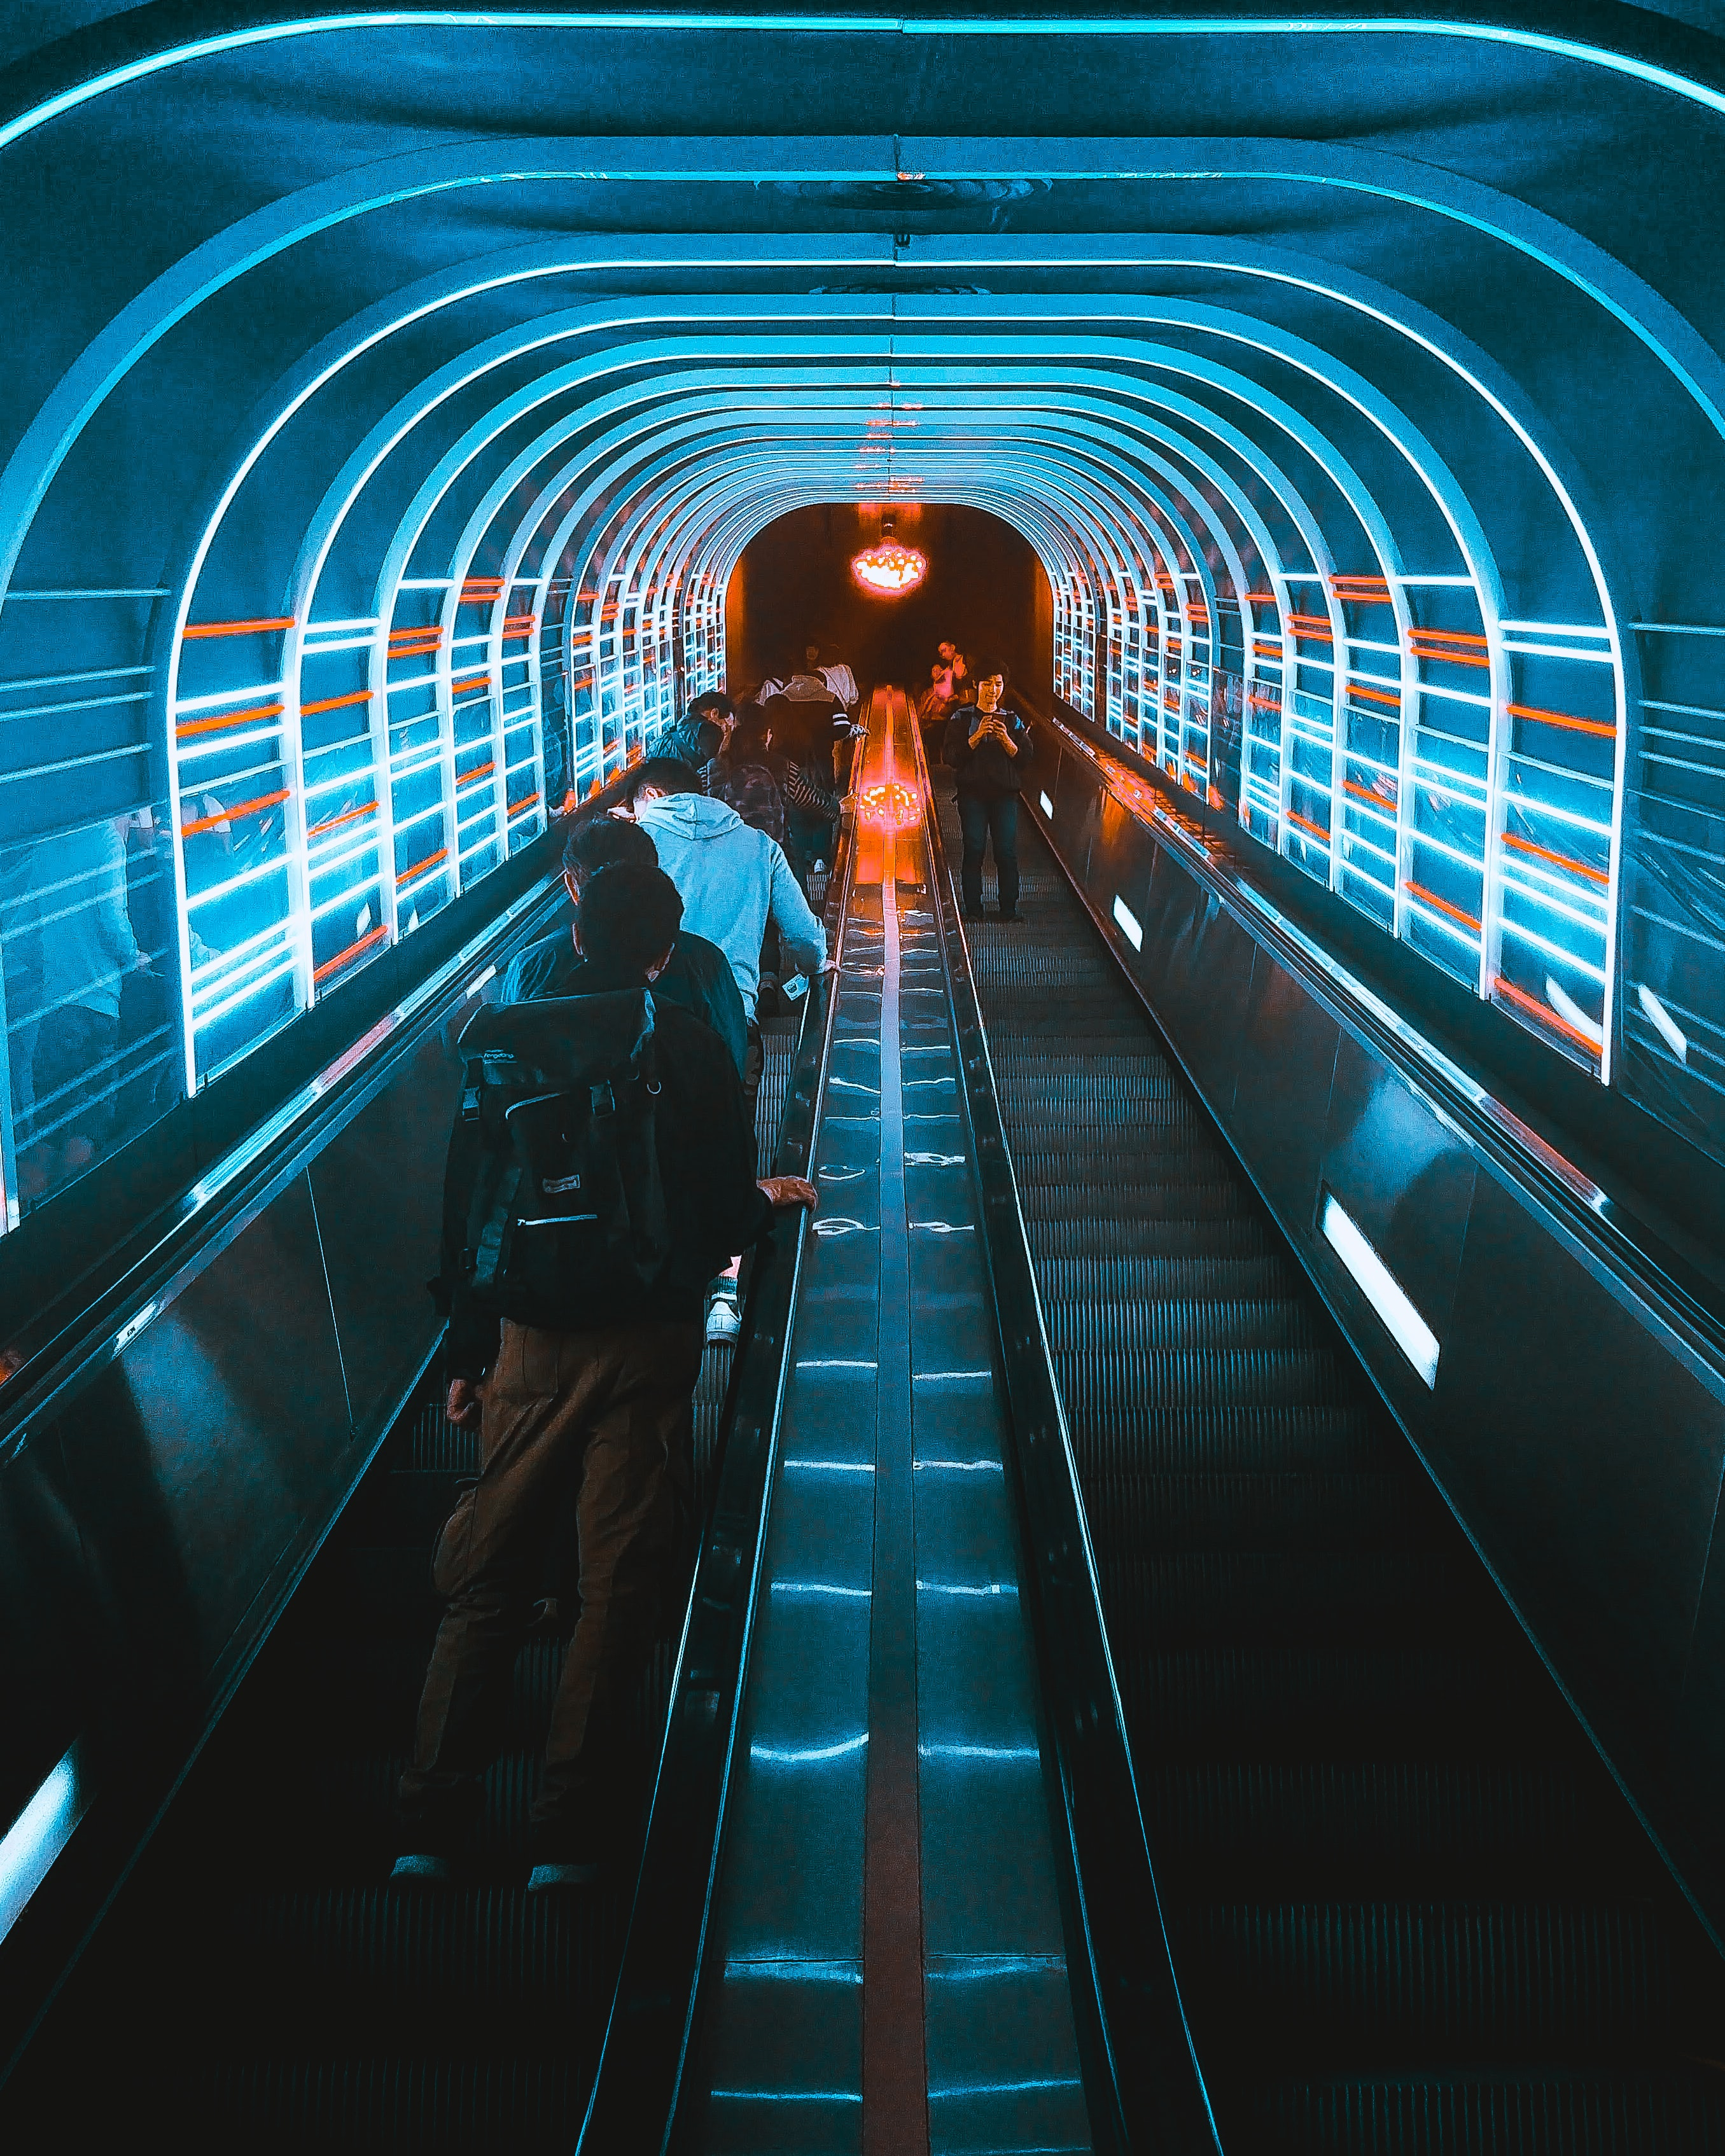 photo of people using escalators under blue LED lights